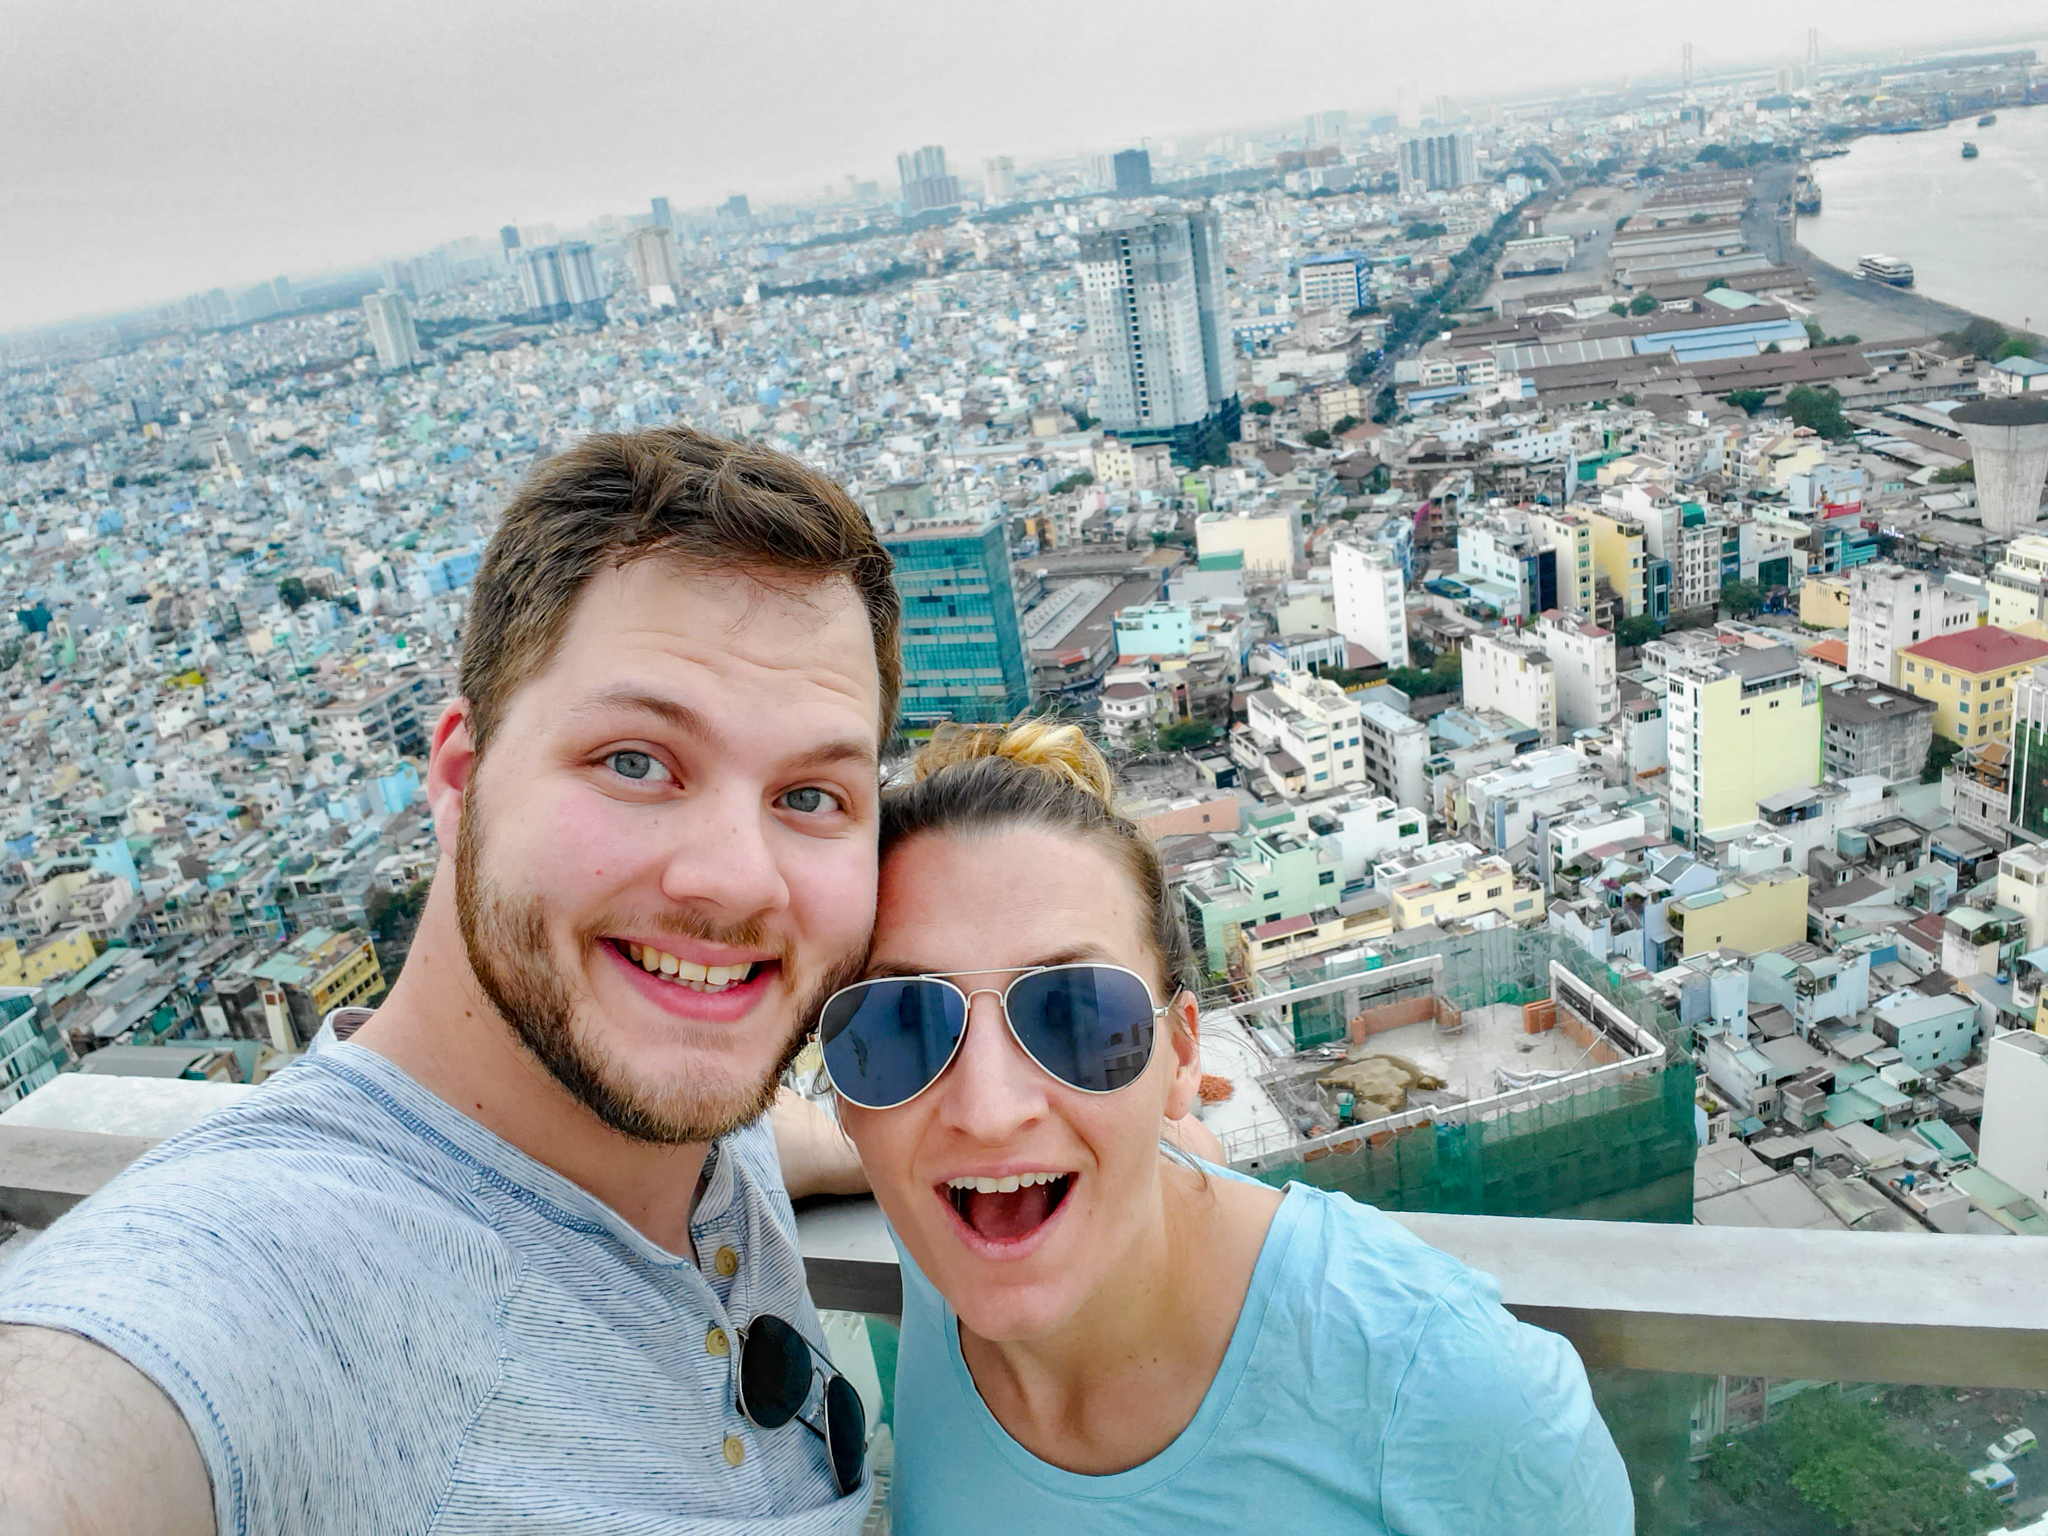 Uprooted-Traveler-48-hour-itinerary-Ho-Chi-Minh-rooftop.jpg